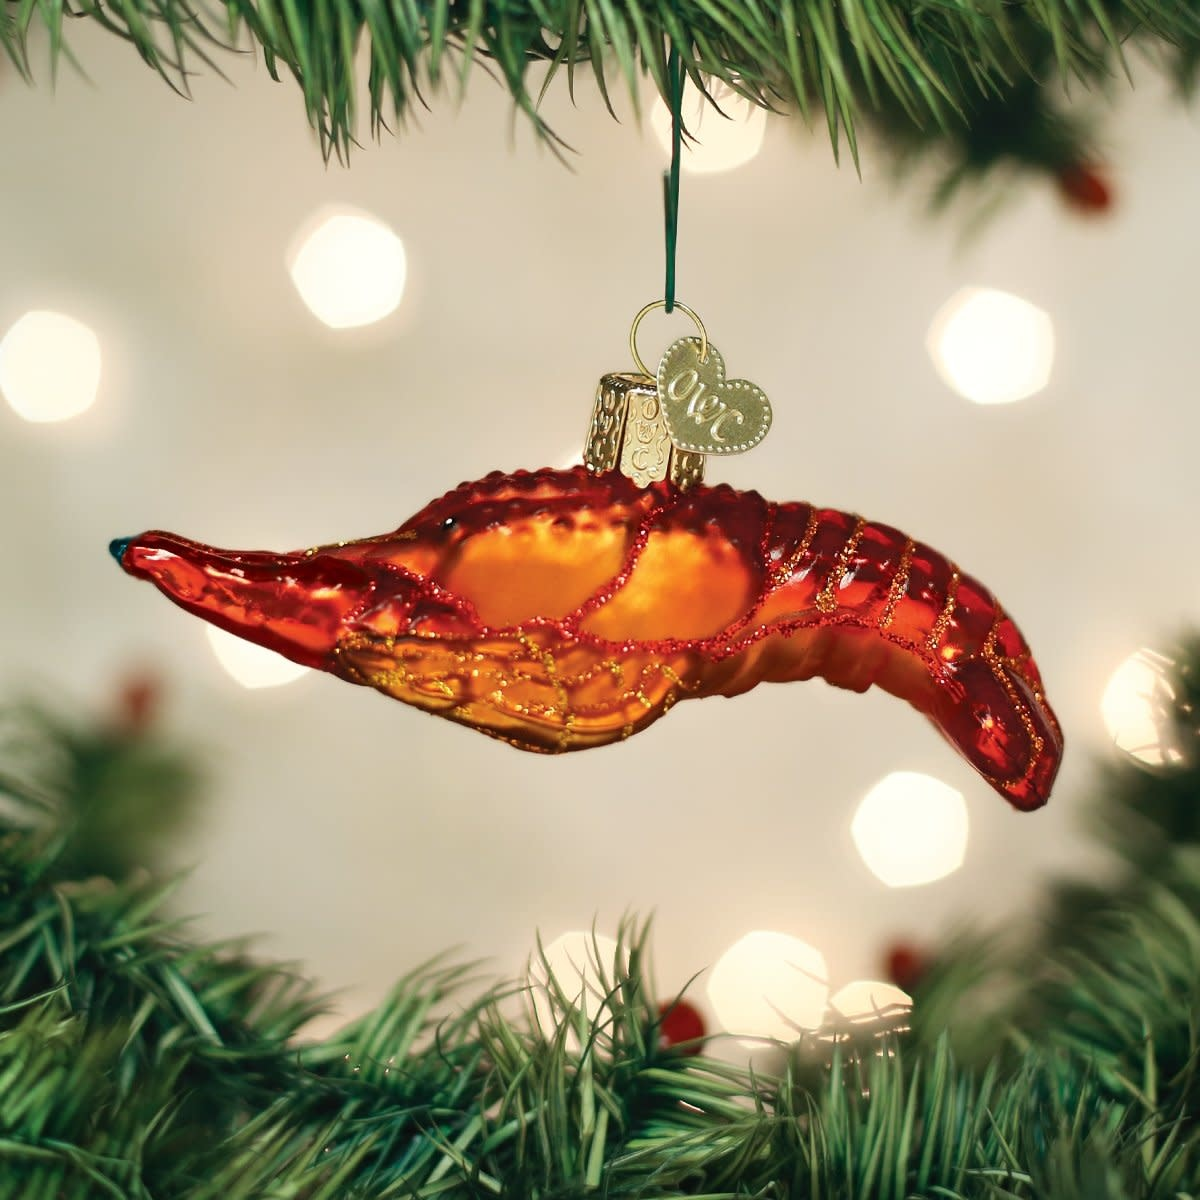 Old World Christmas OWC Crawfish Ornament